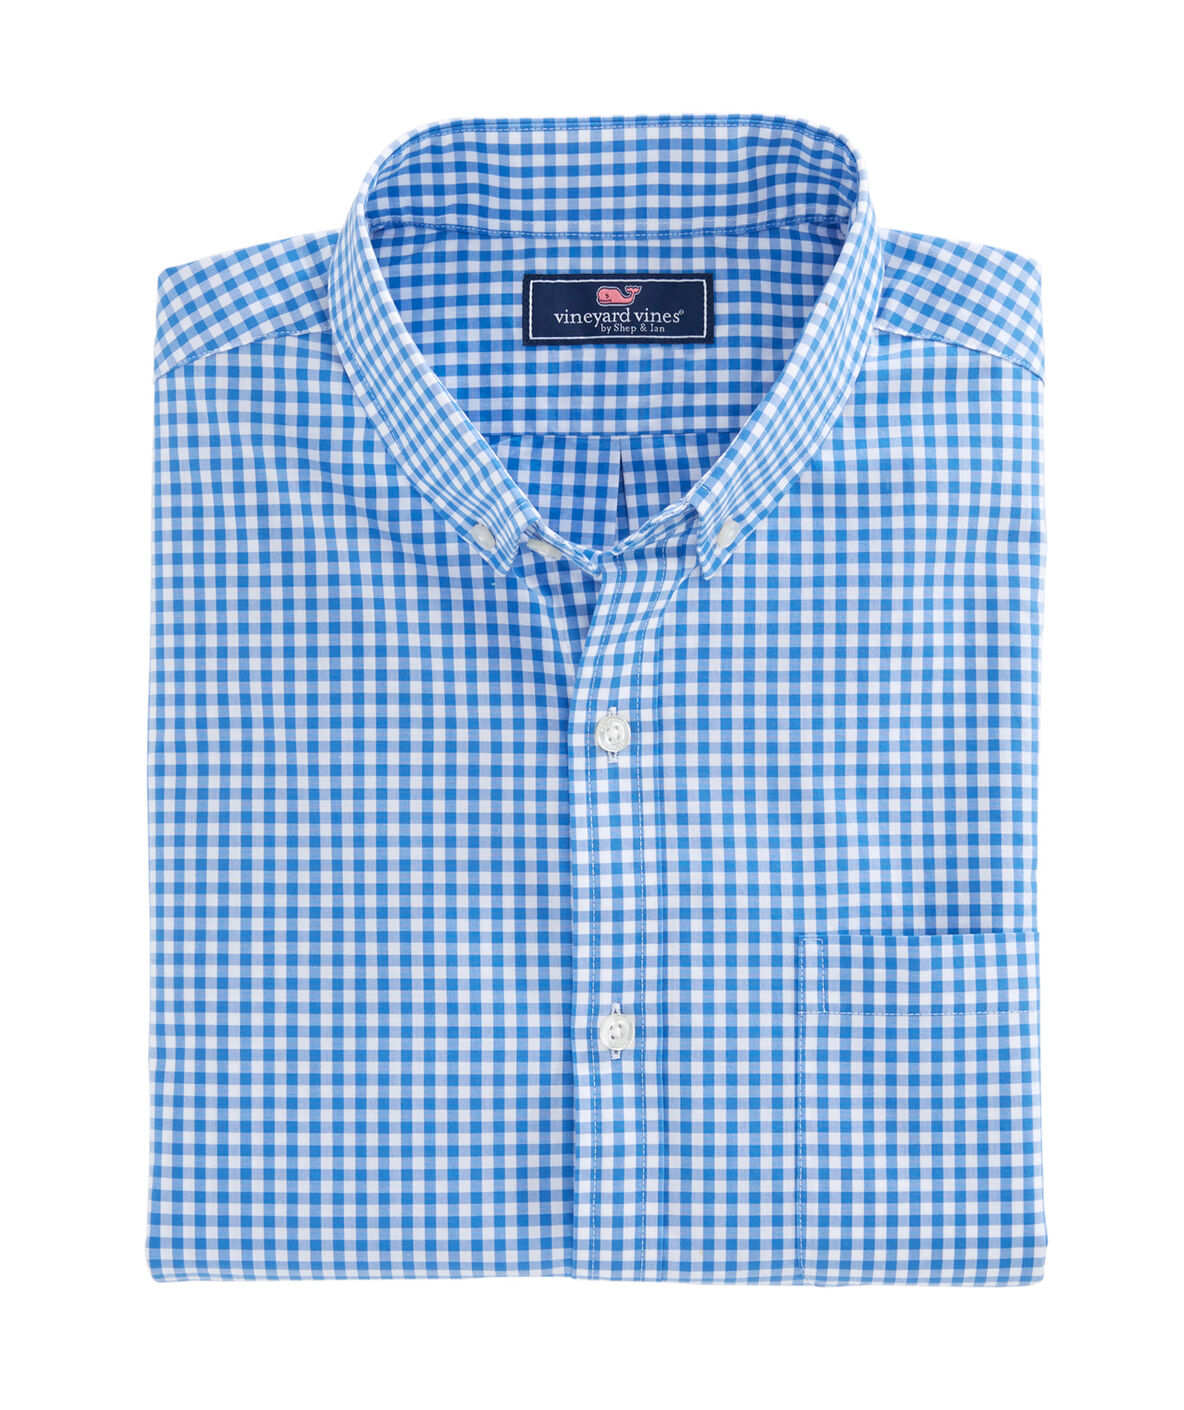 Description of Blue Gingham for screen readers